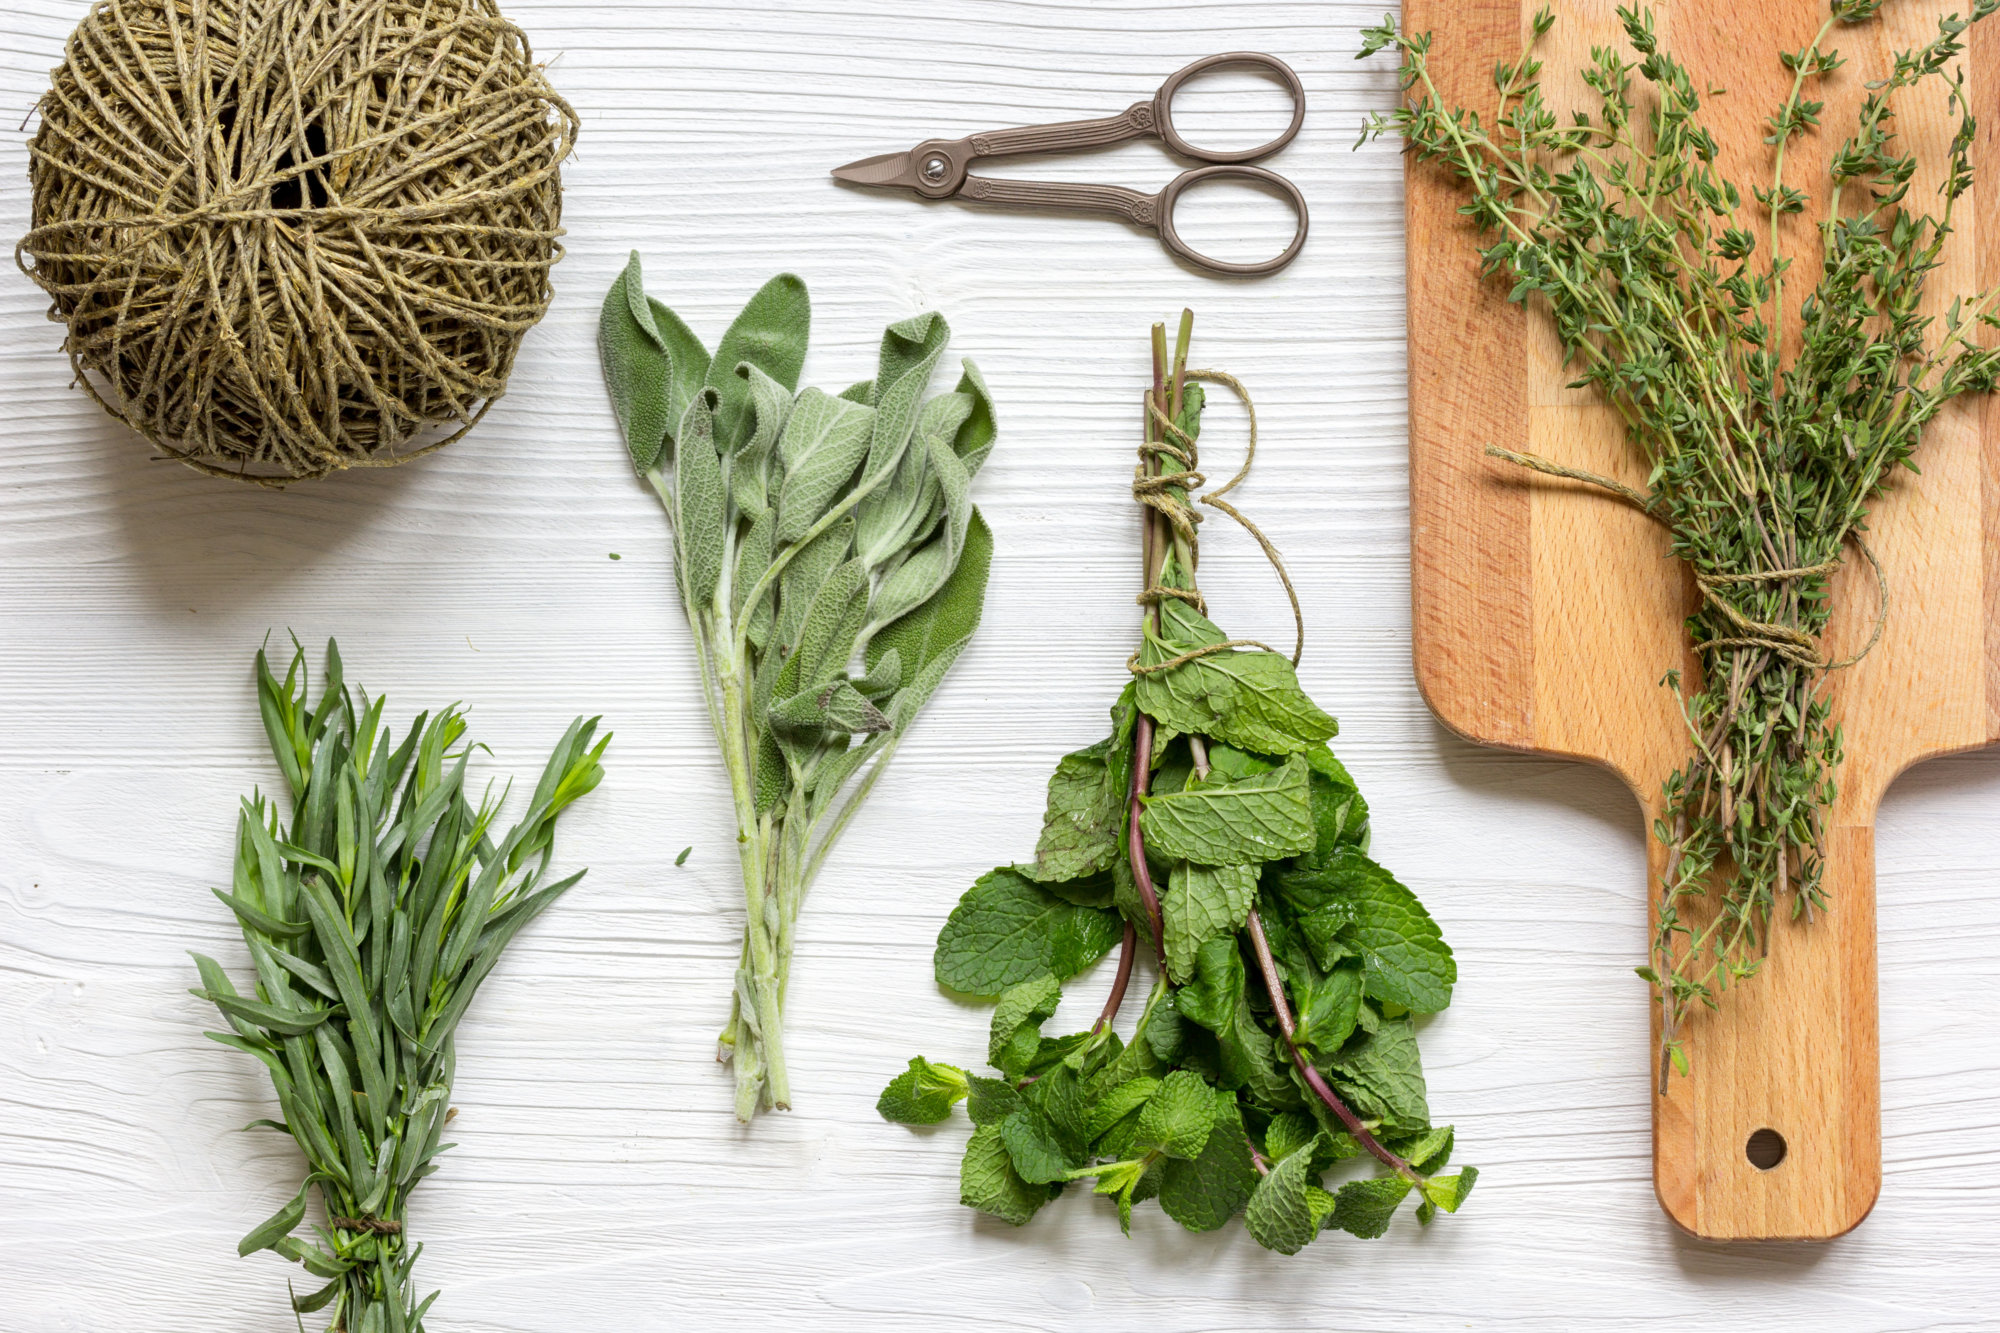 fresh herbs preparation to be dried top view on wooden background